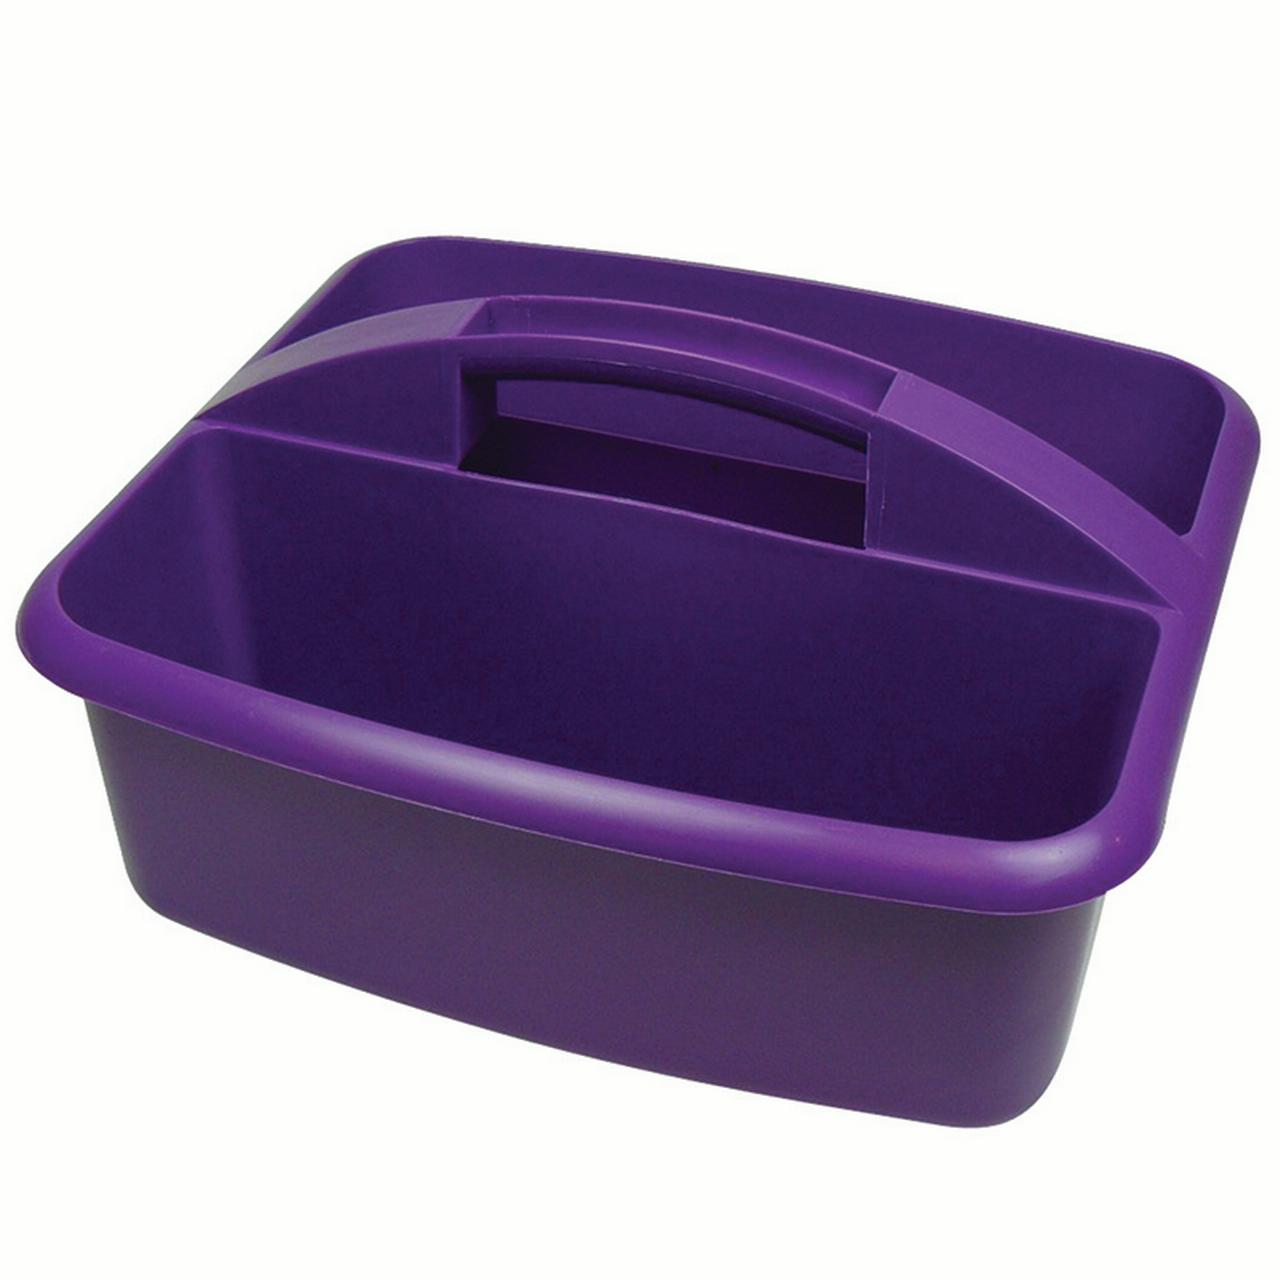 LARGE UTILITY CADDY PURPLE